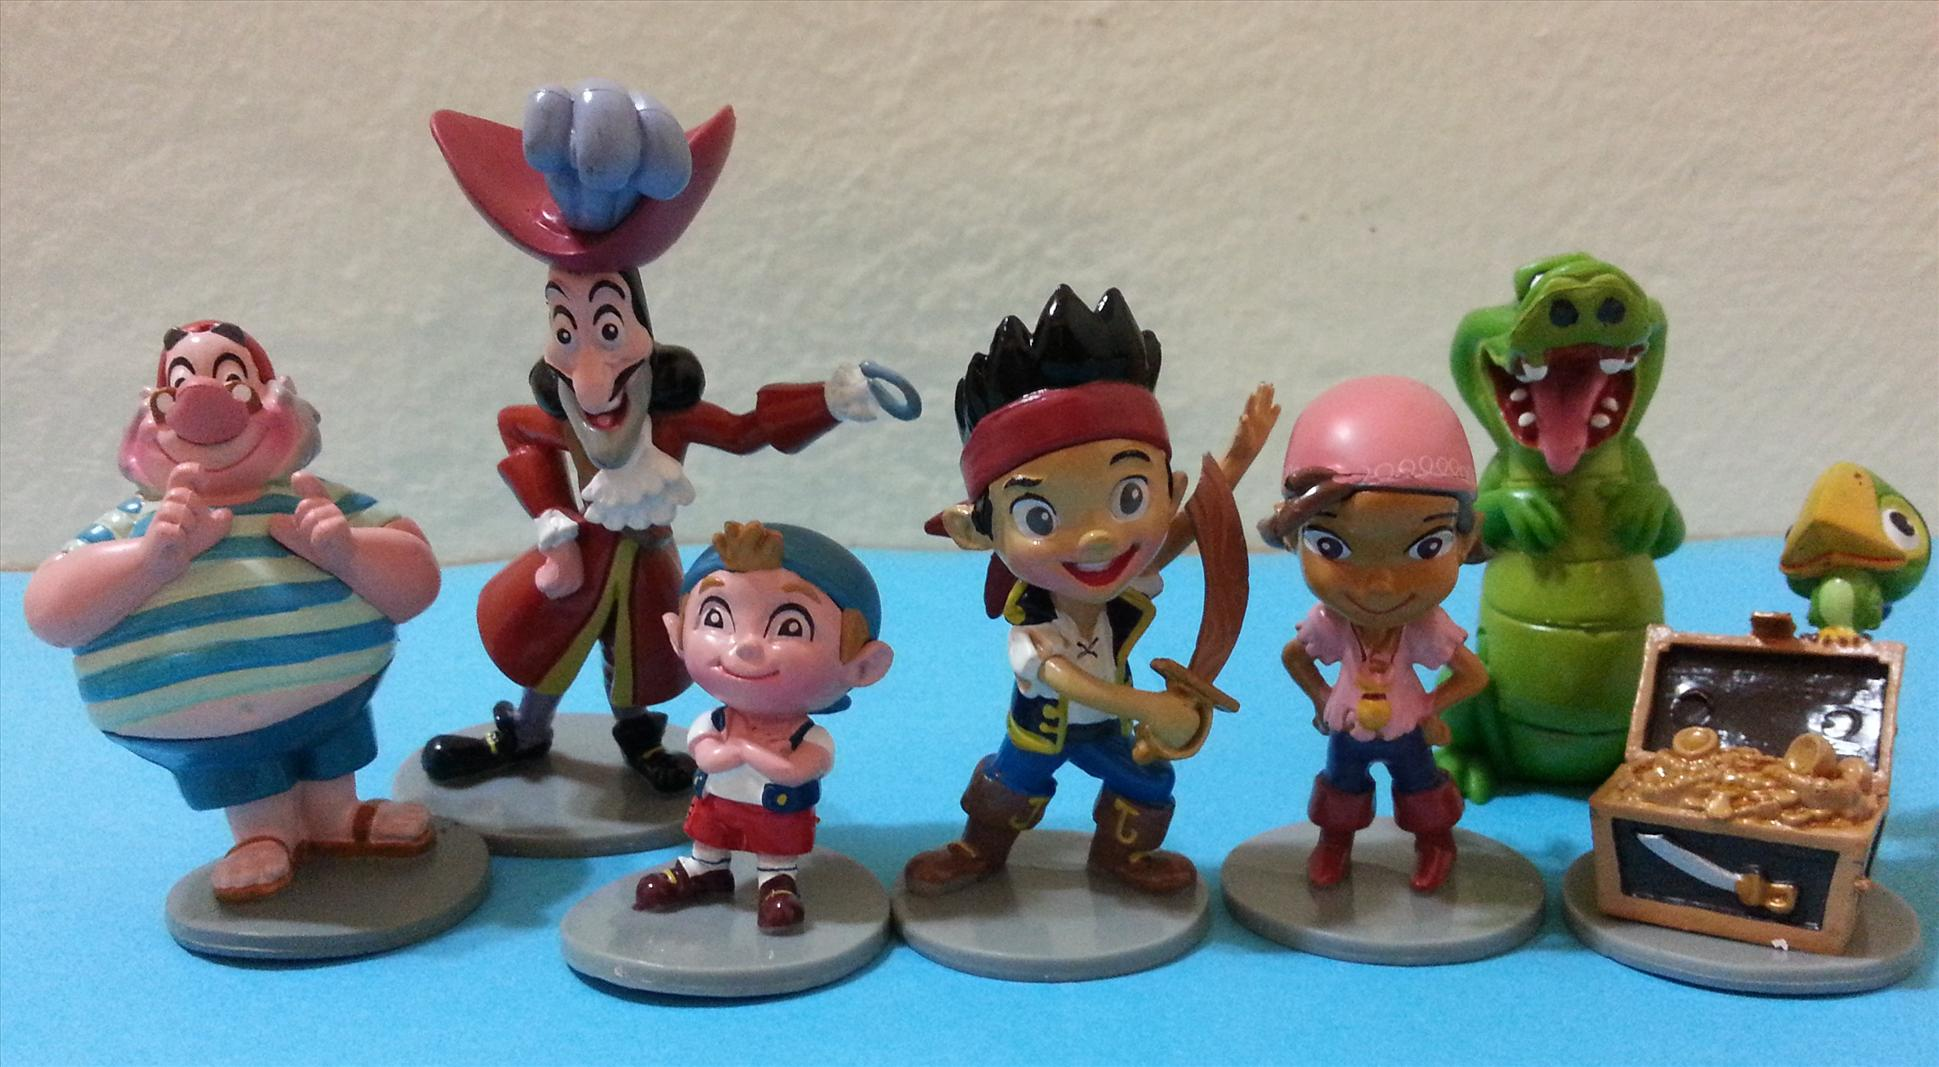 Jake and the Neverland Pirates Cake Topper Figurine -JPCT01